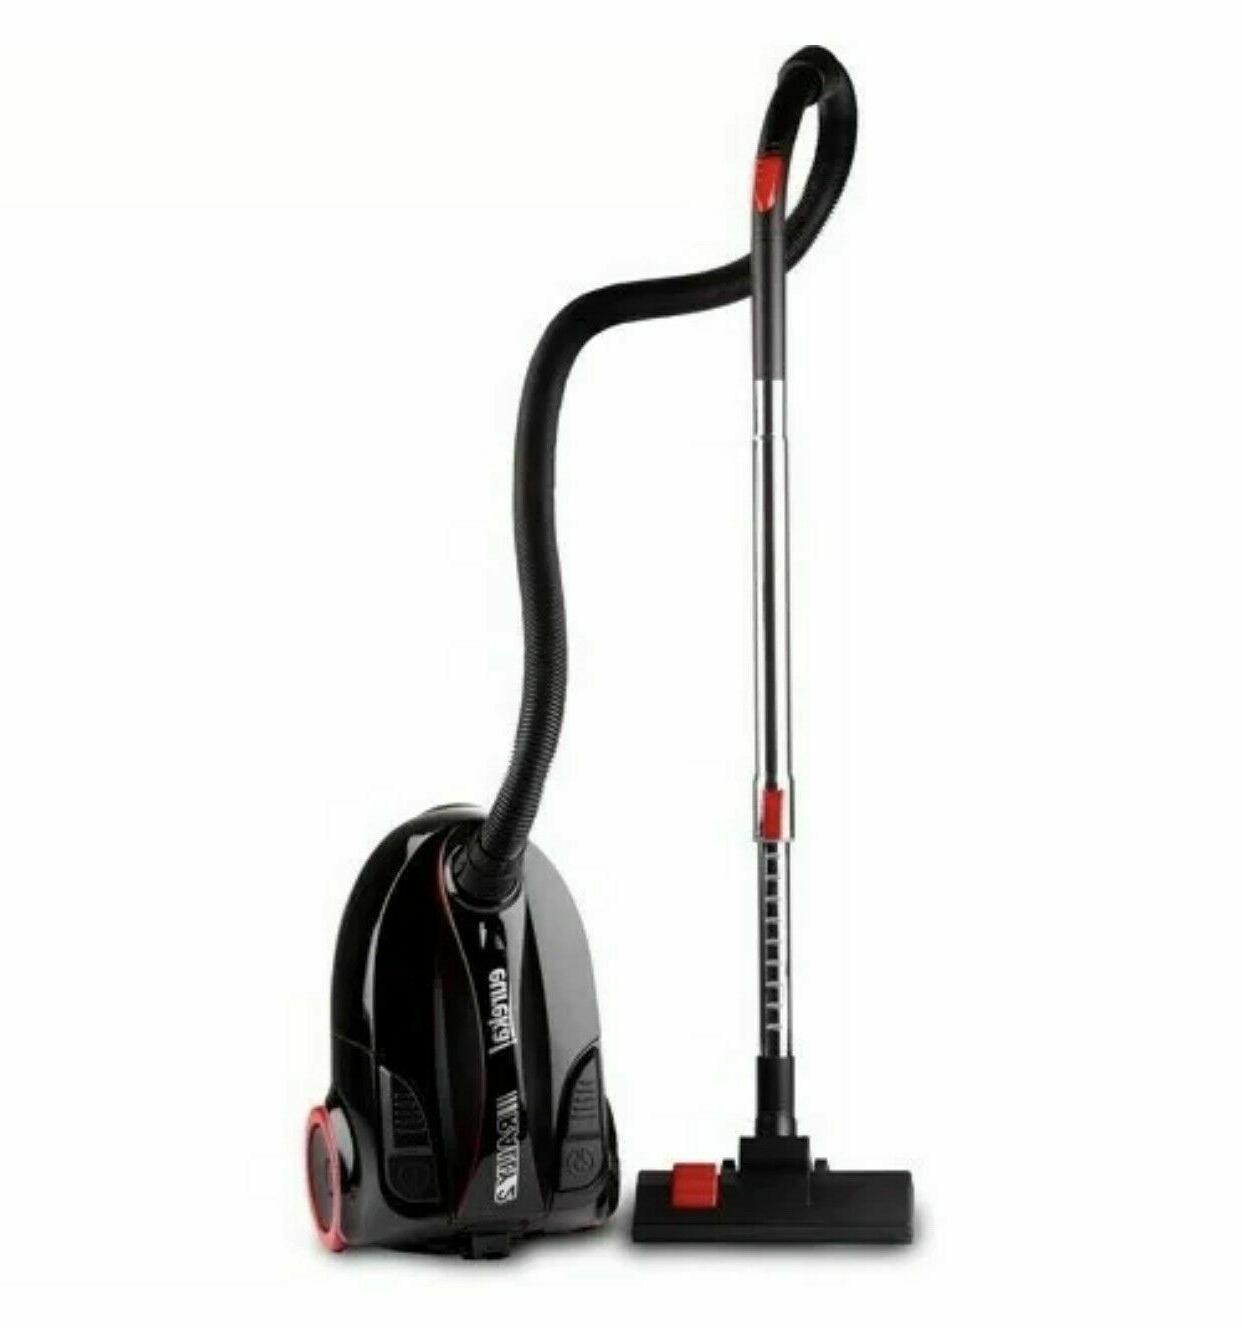 brand new rally 2 canister vacuum